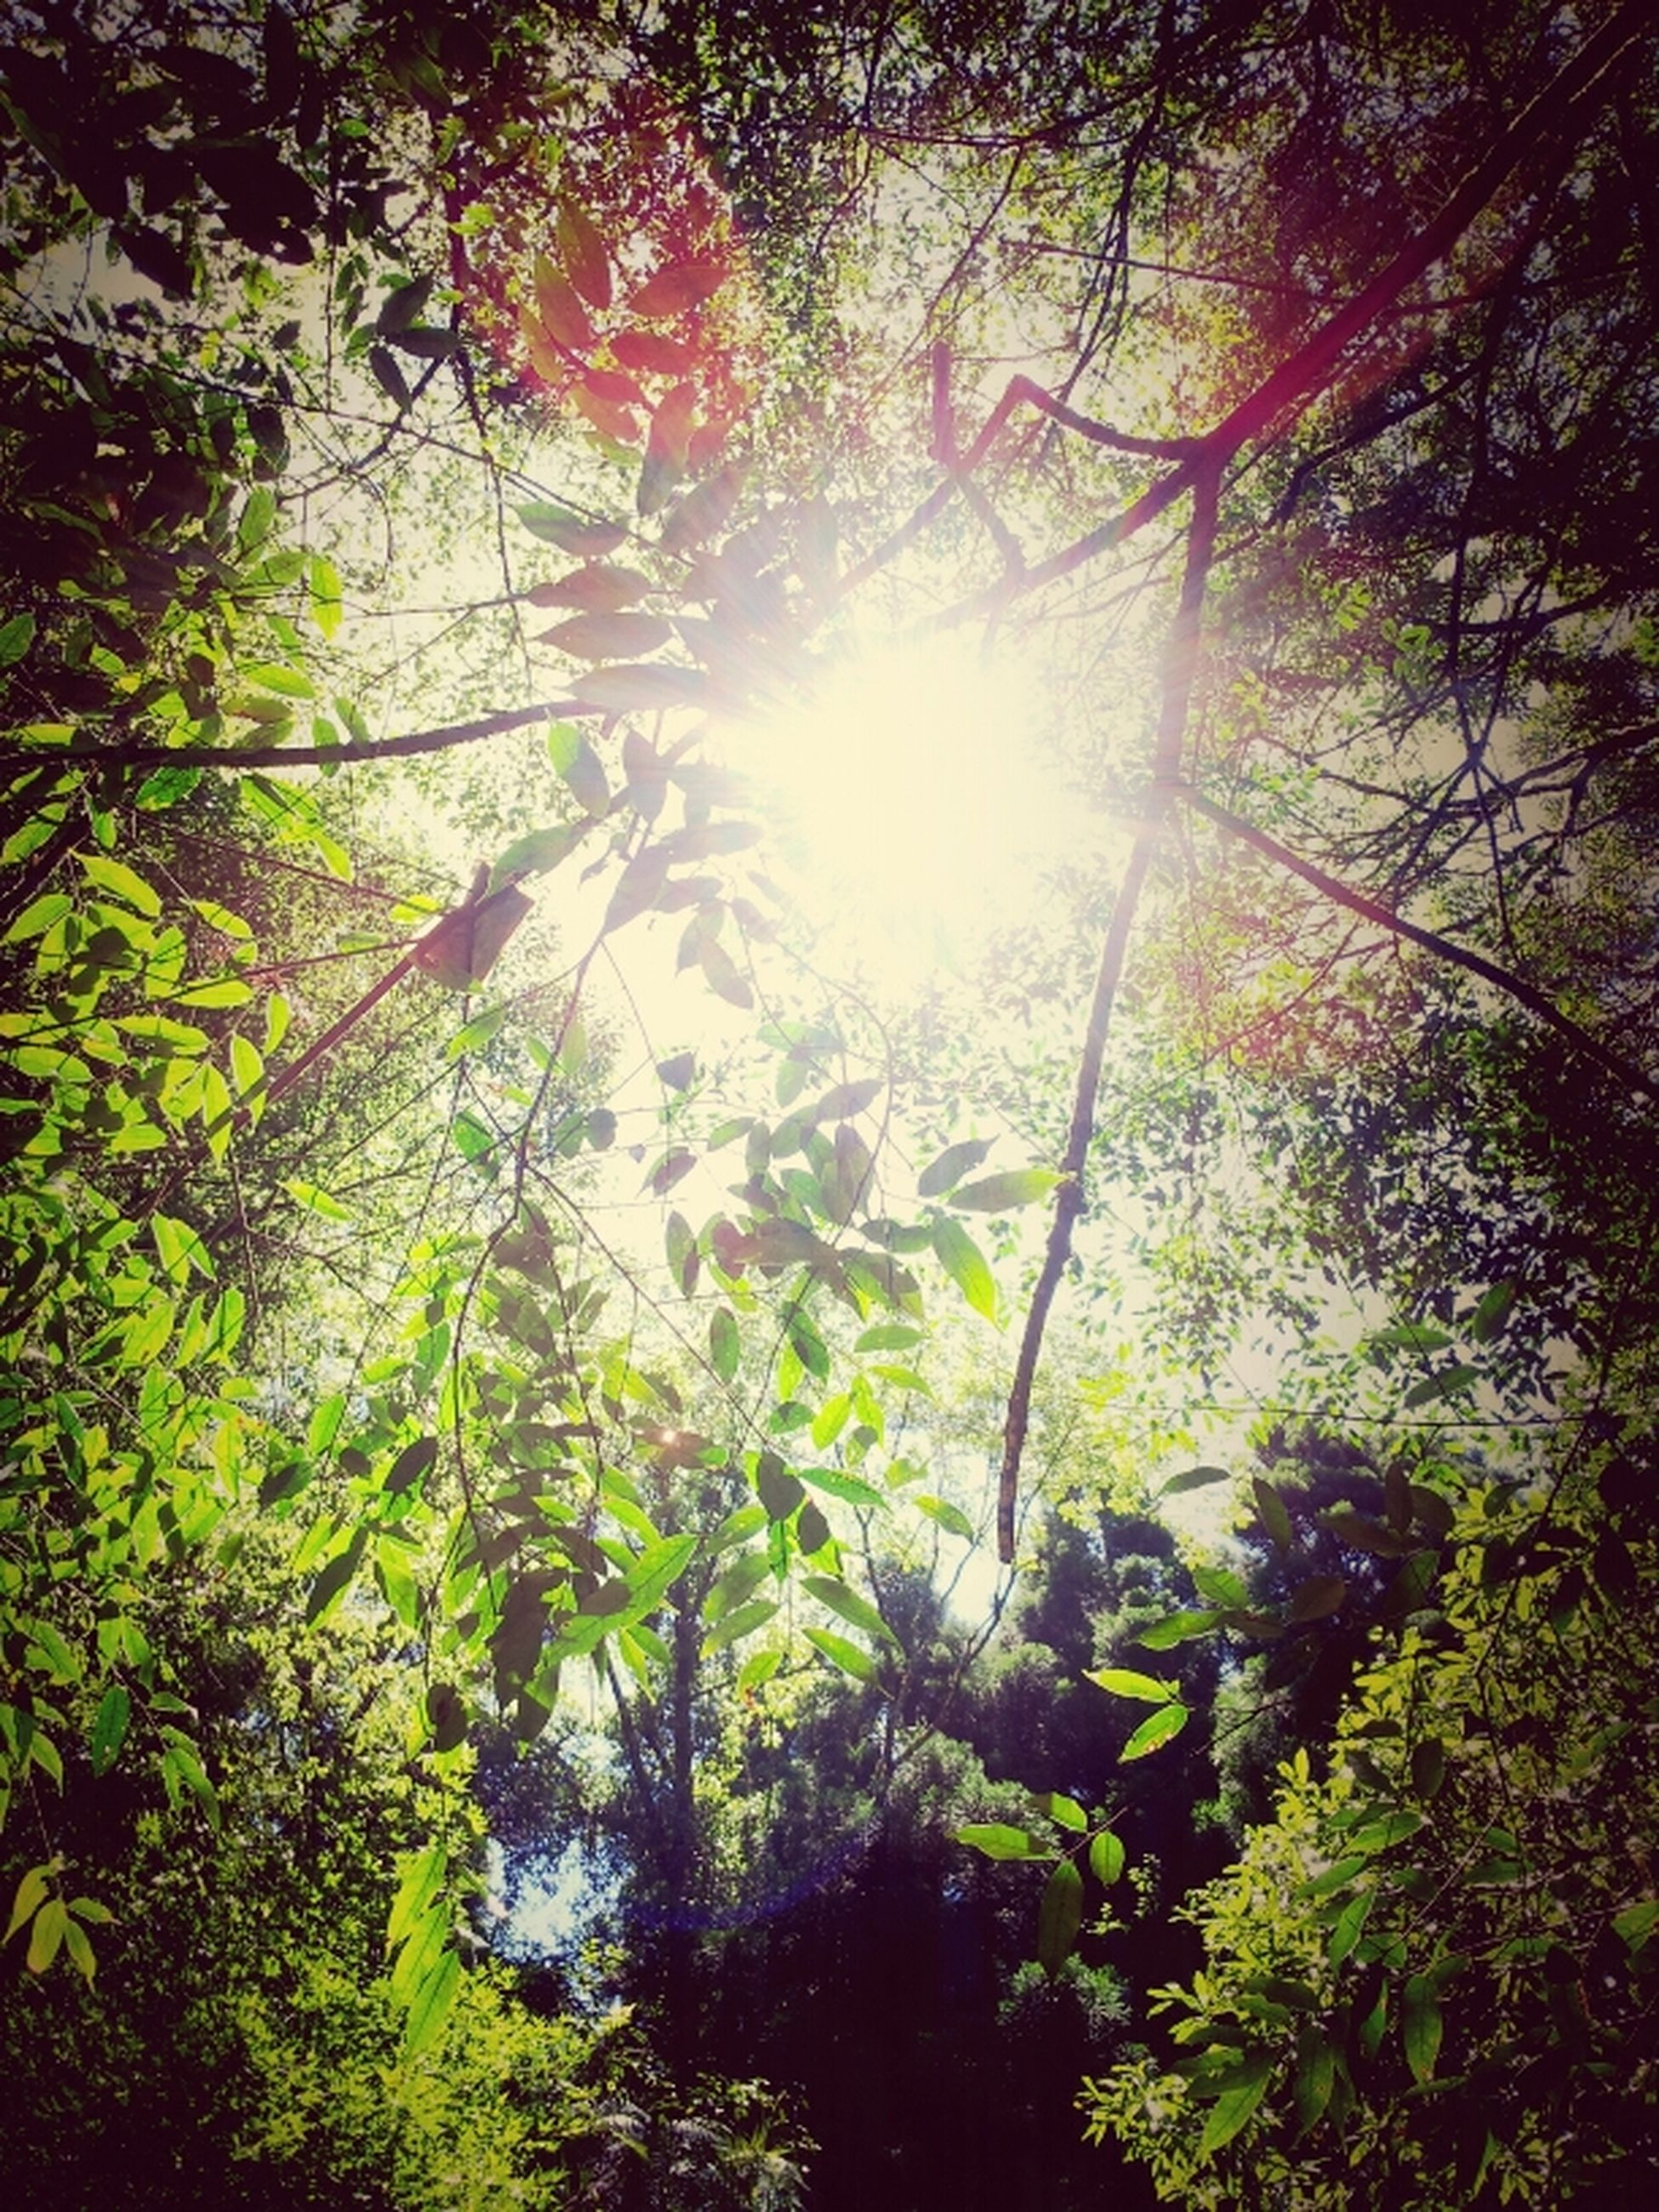 tree, sun, sunbeam, sunlight, growth, low angle view, lens flare, branch, tranquility, nature, beauty in nature, forest, tranquil scene, scenics, bright, sunny, green color, sky, back lit, day